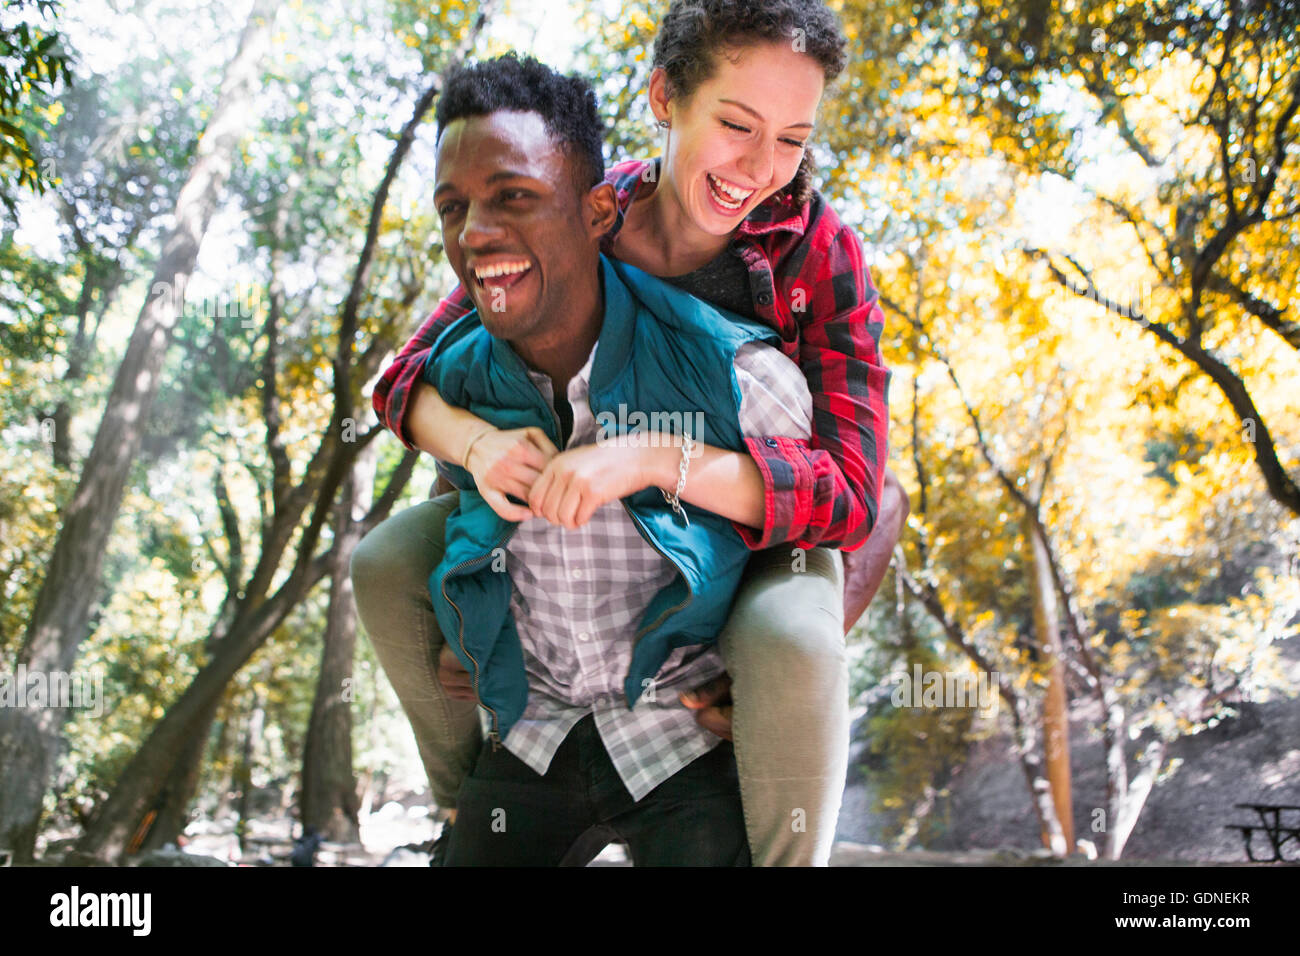 Young female hiker getting piggy back from boyfriend in forest, Arcadia, California, USA - Stock Image